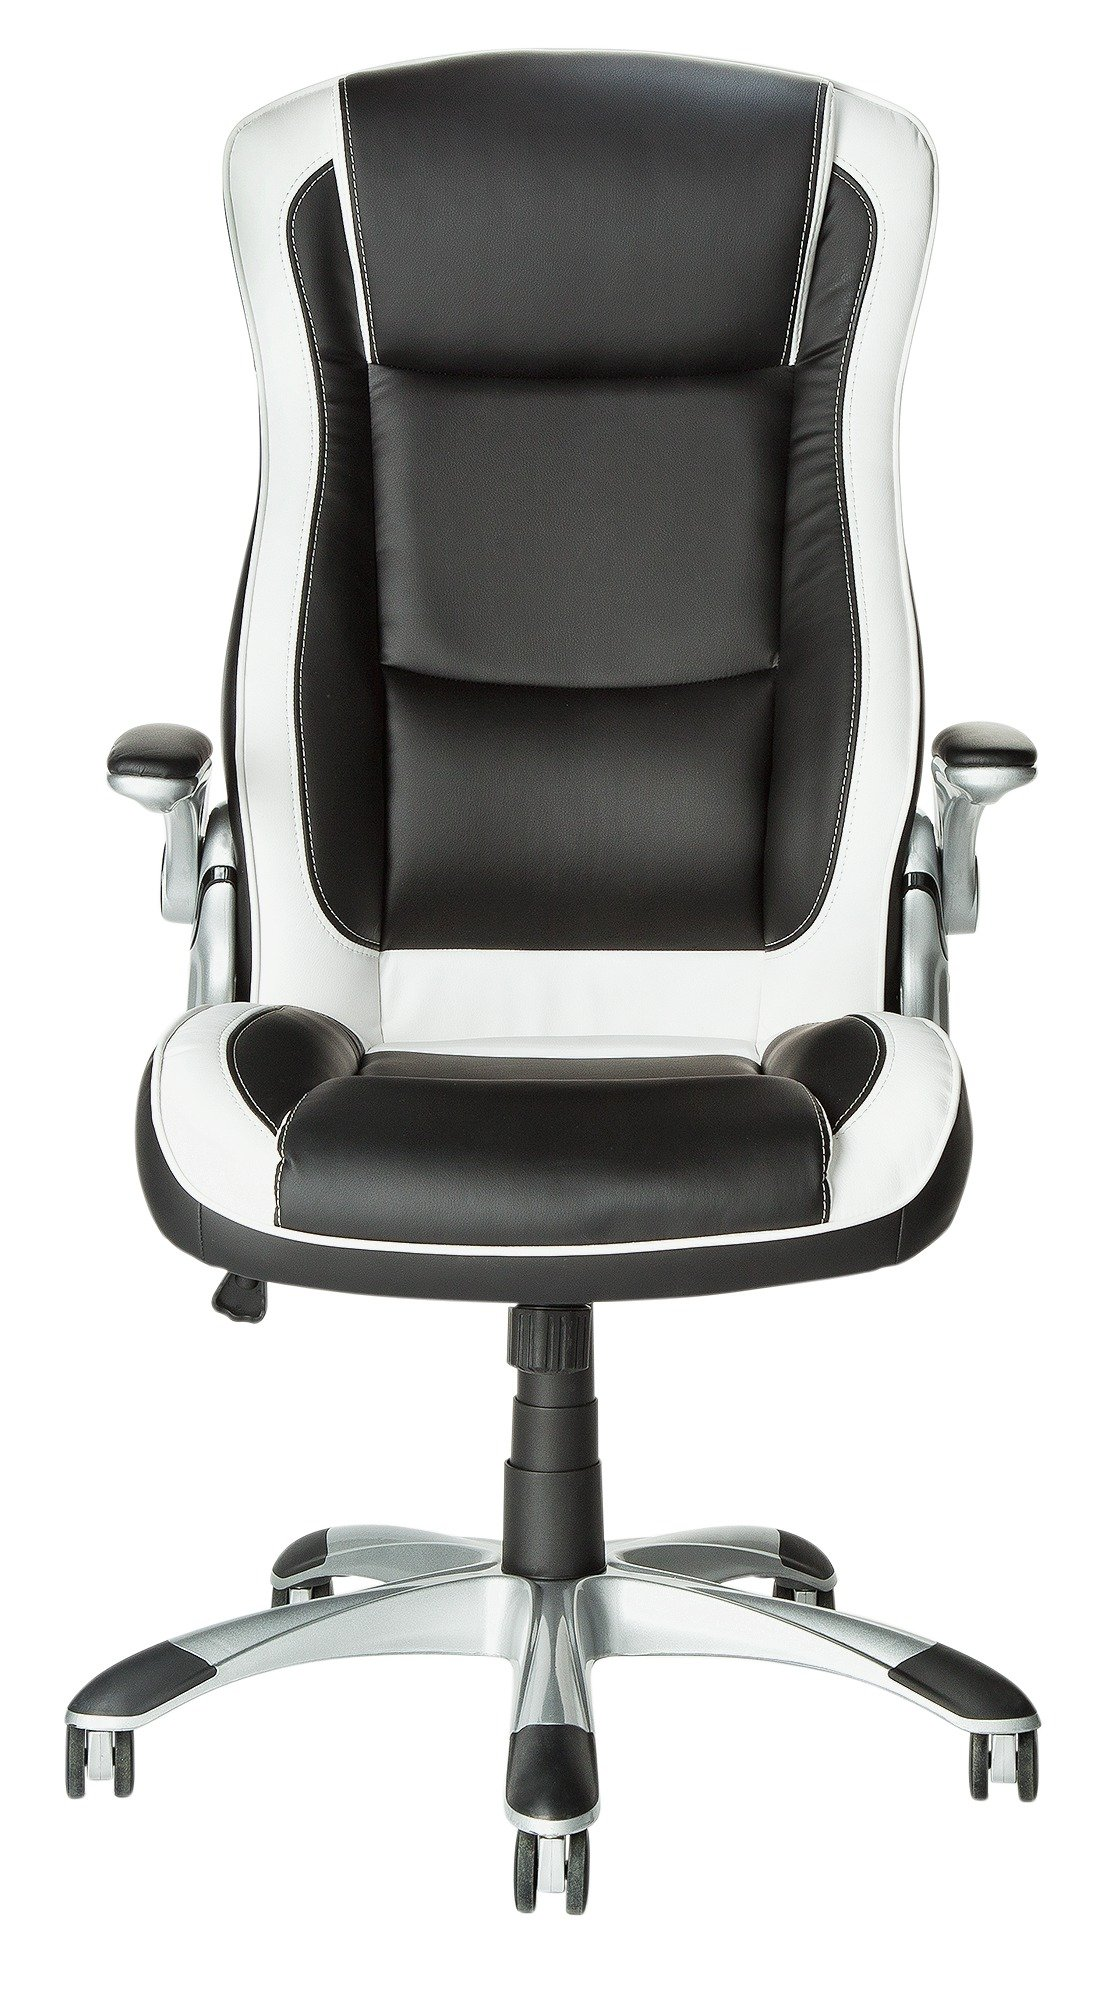 buy home dexter height adjustable office chair - black/white at